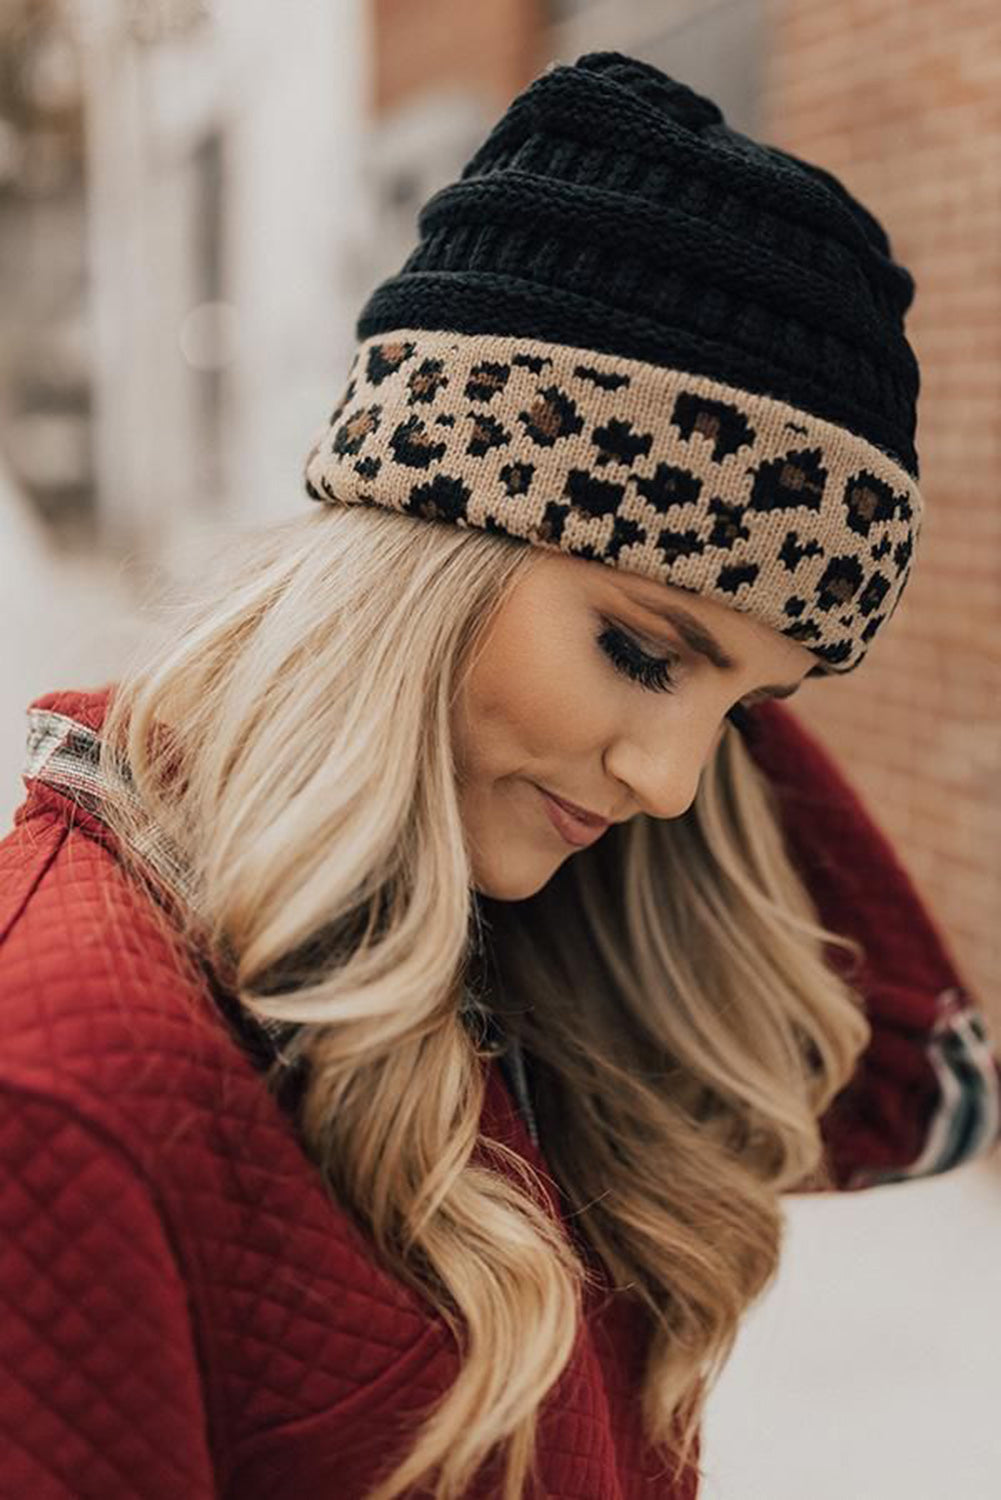 Black Knitted Leopard Beanie Others Discount Designer Fashion Clothes Shoes Bags Women Men Kids Children Black Owned Business